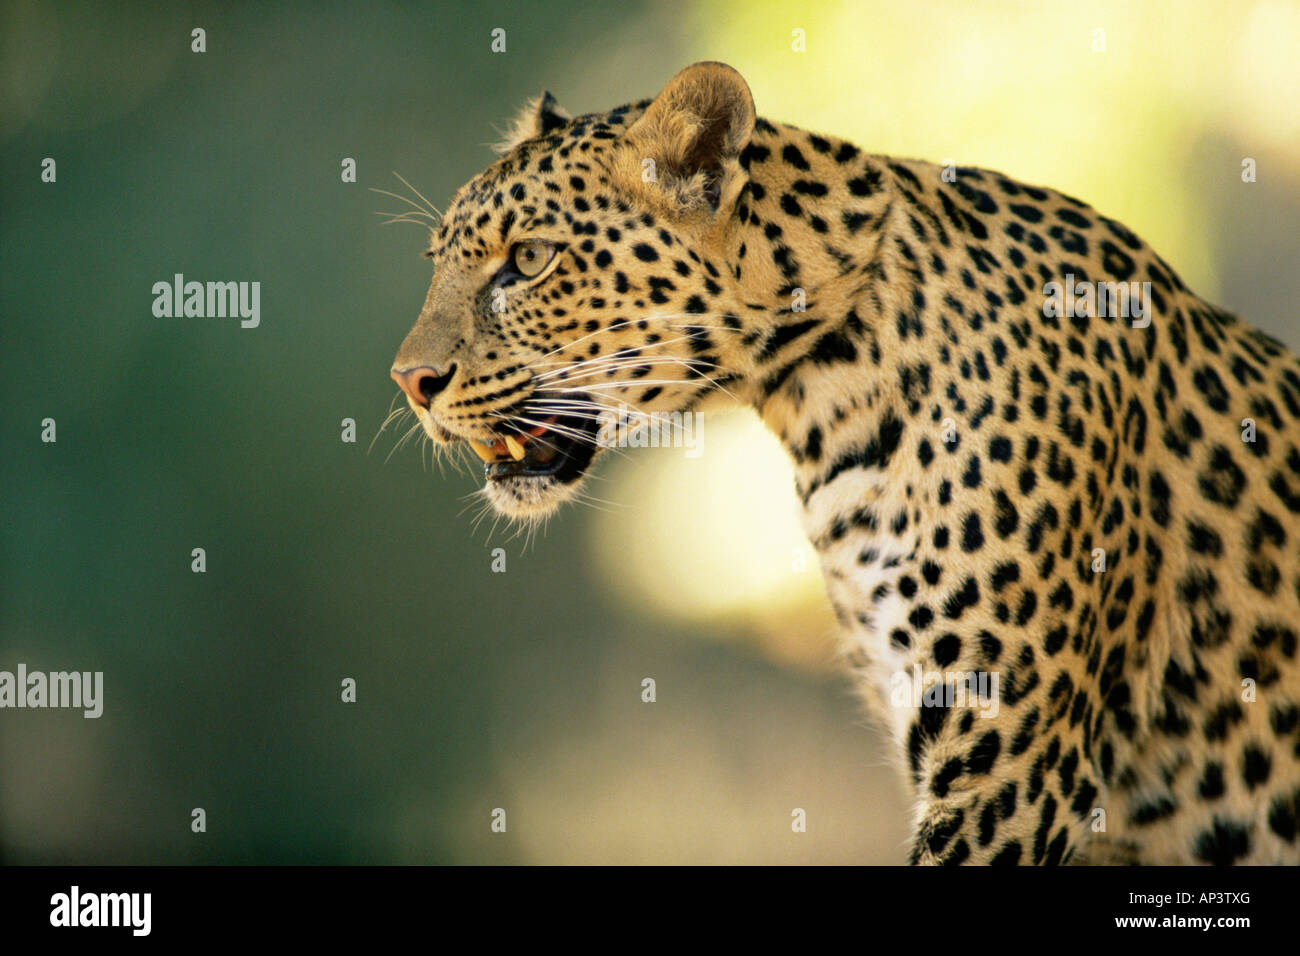 Asian leopard - Stock Image